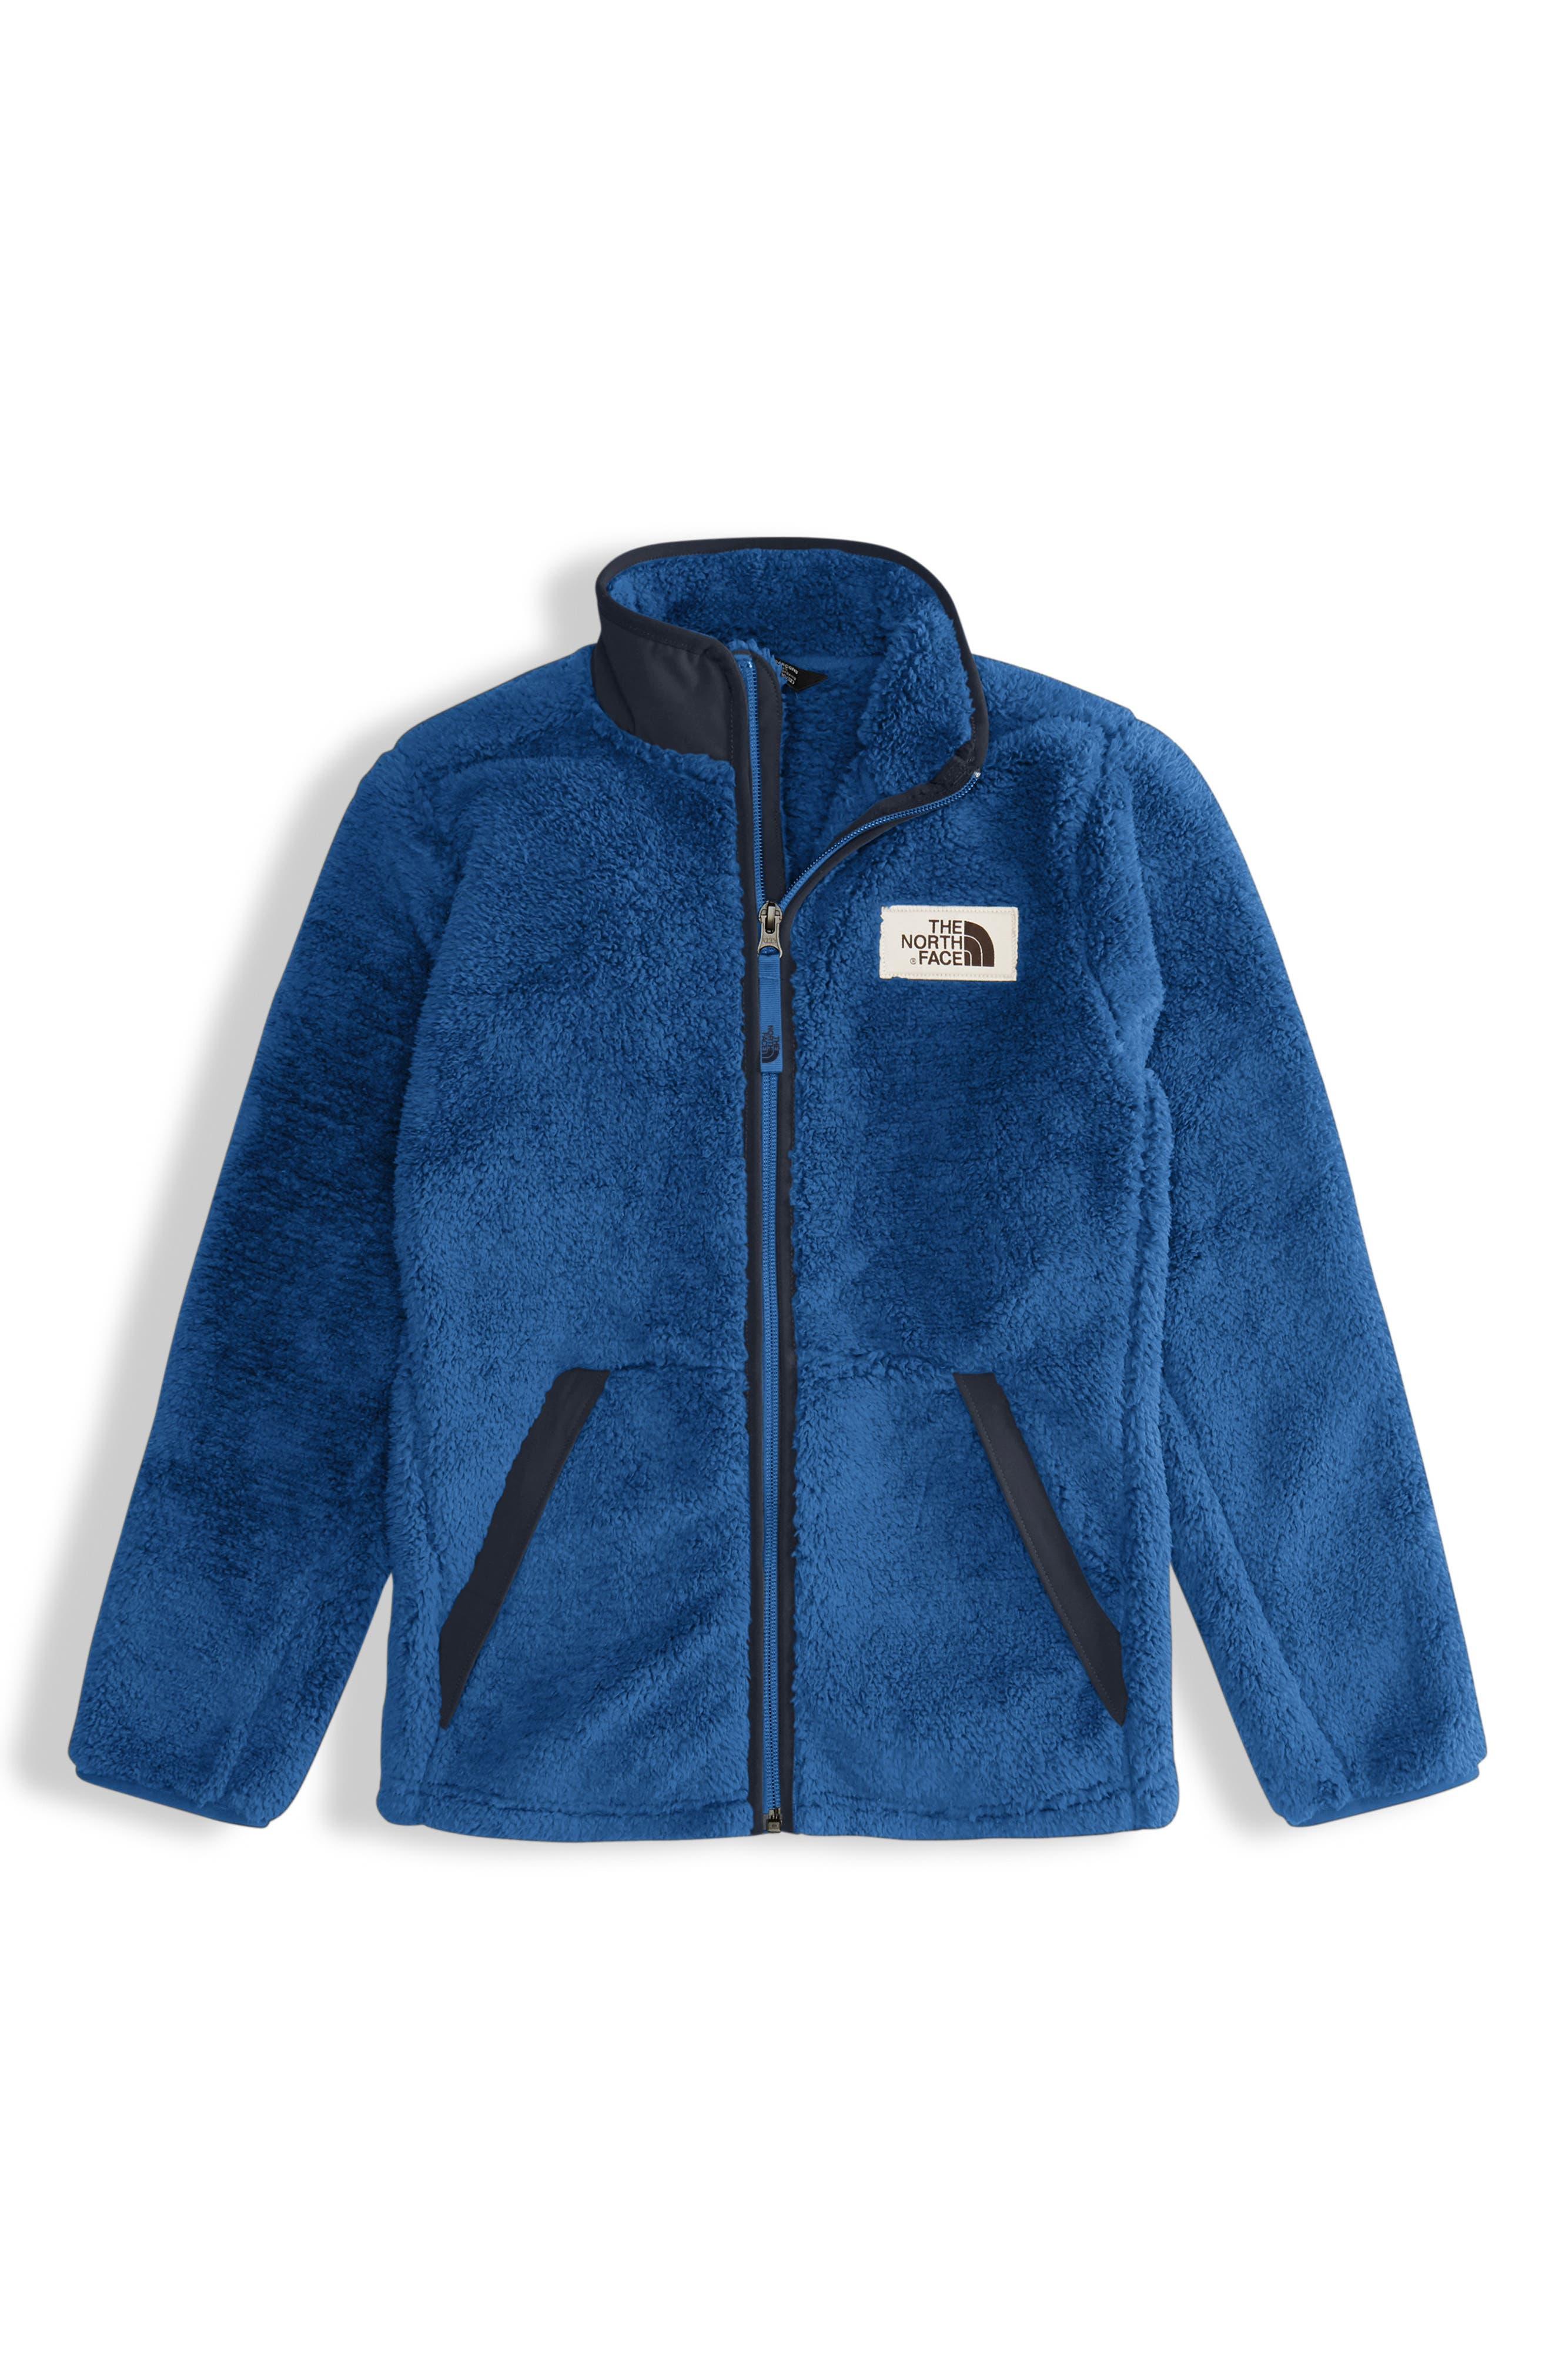 Campshire Full Zip Jacket,                         Main,                         color, SHADY BLUE